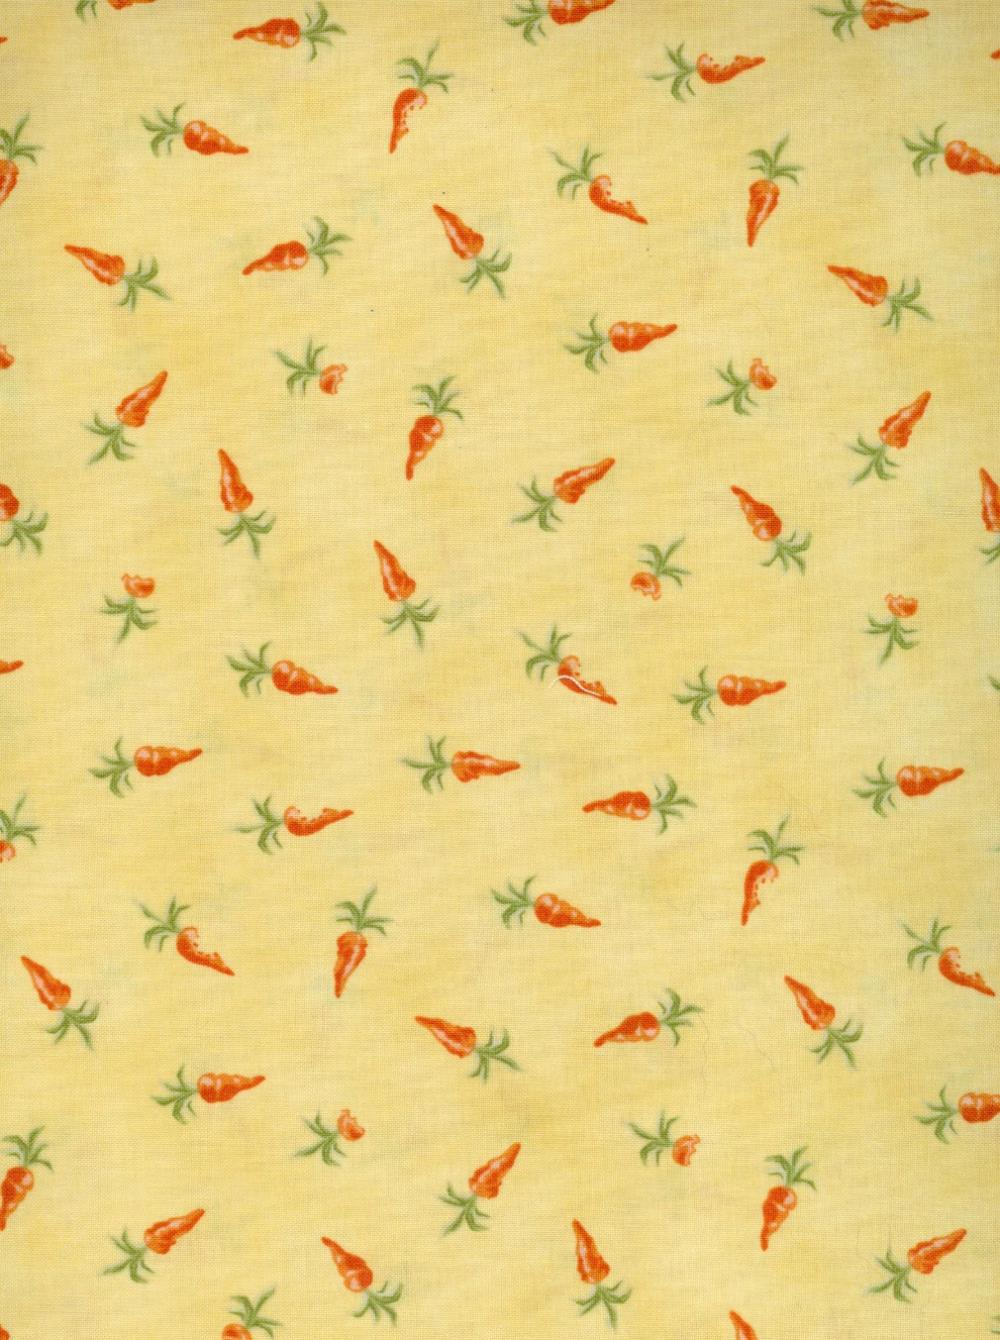 Baby Bunnies Everywhere Fabric Carrots on Yellow